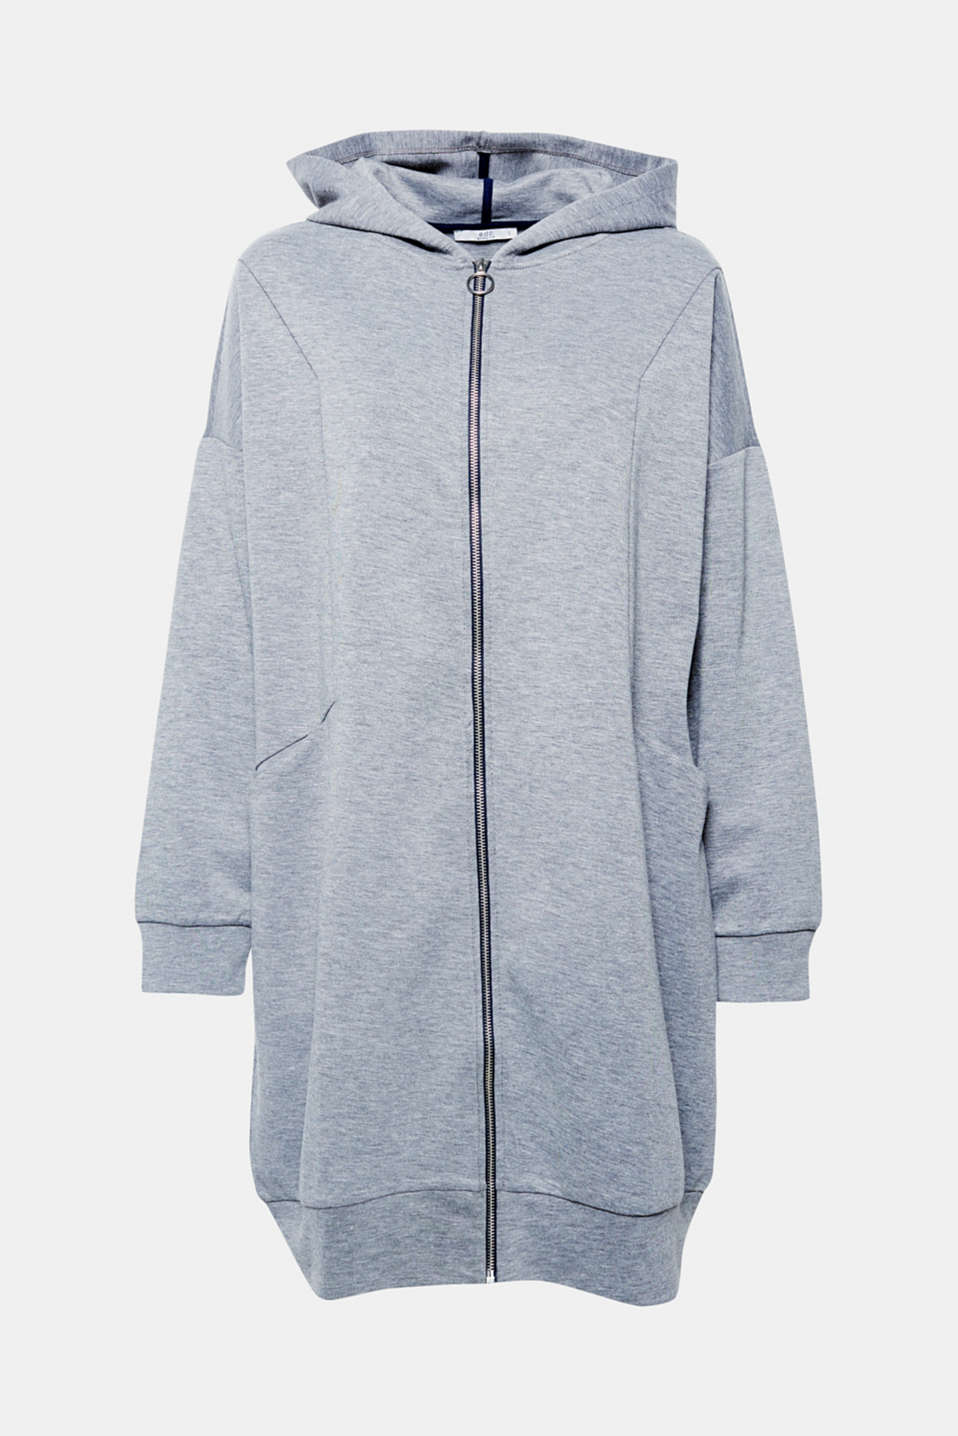 For indoors or outdoors: this long cardigan with a zip and hood will keep you casual and warm.